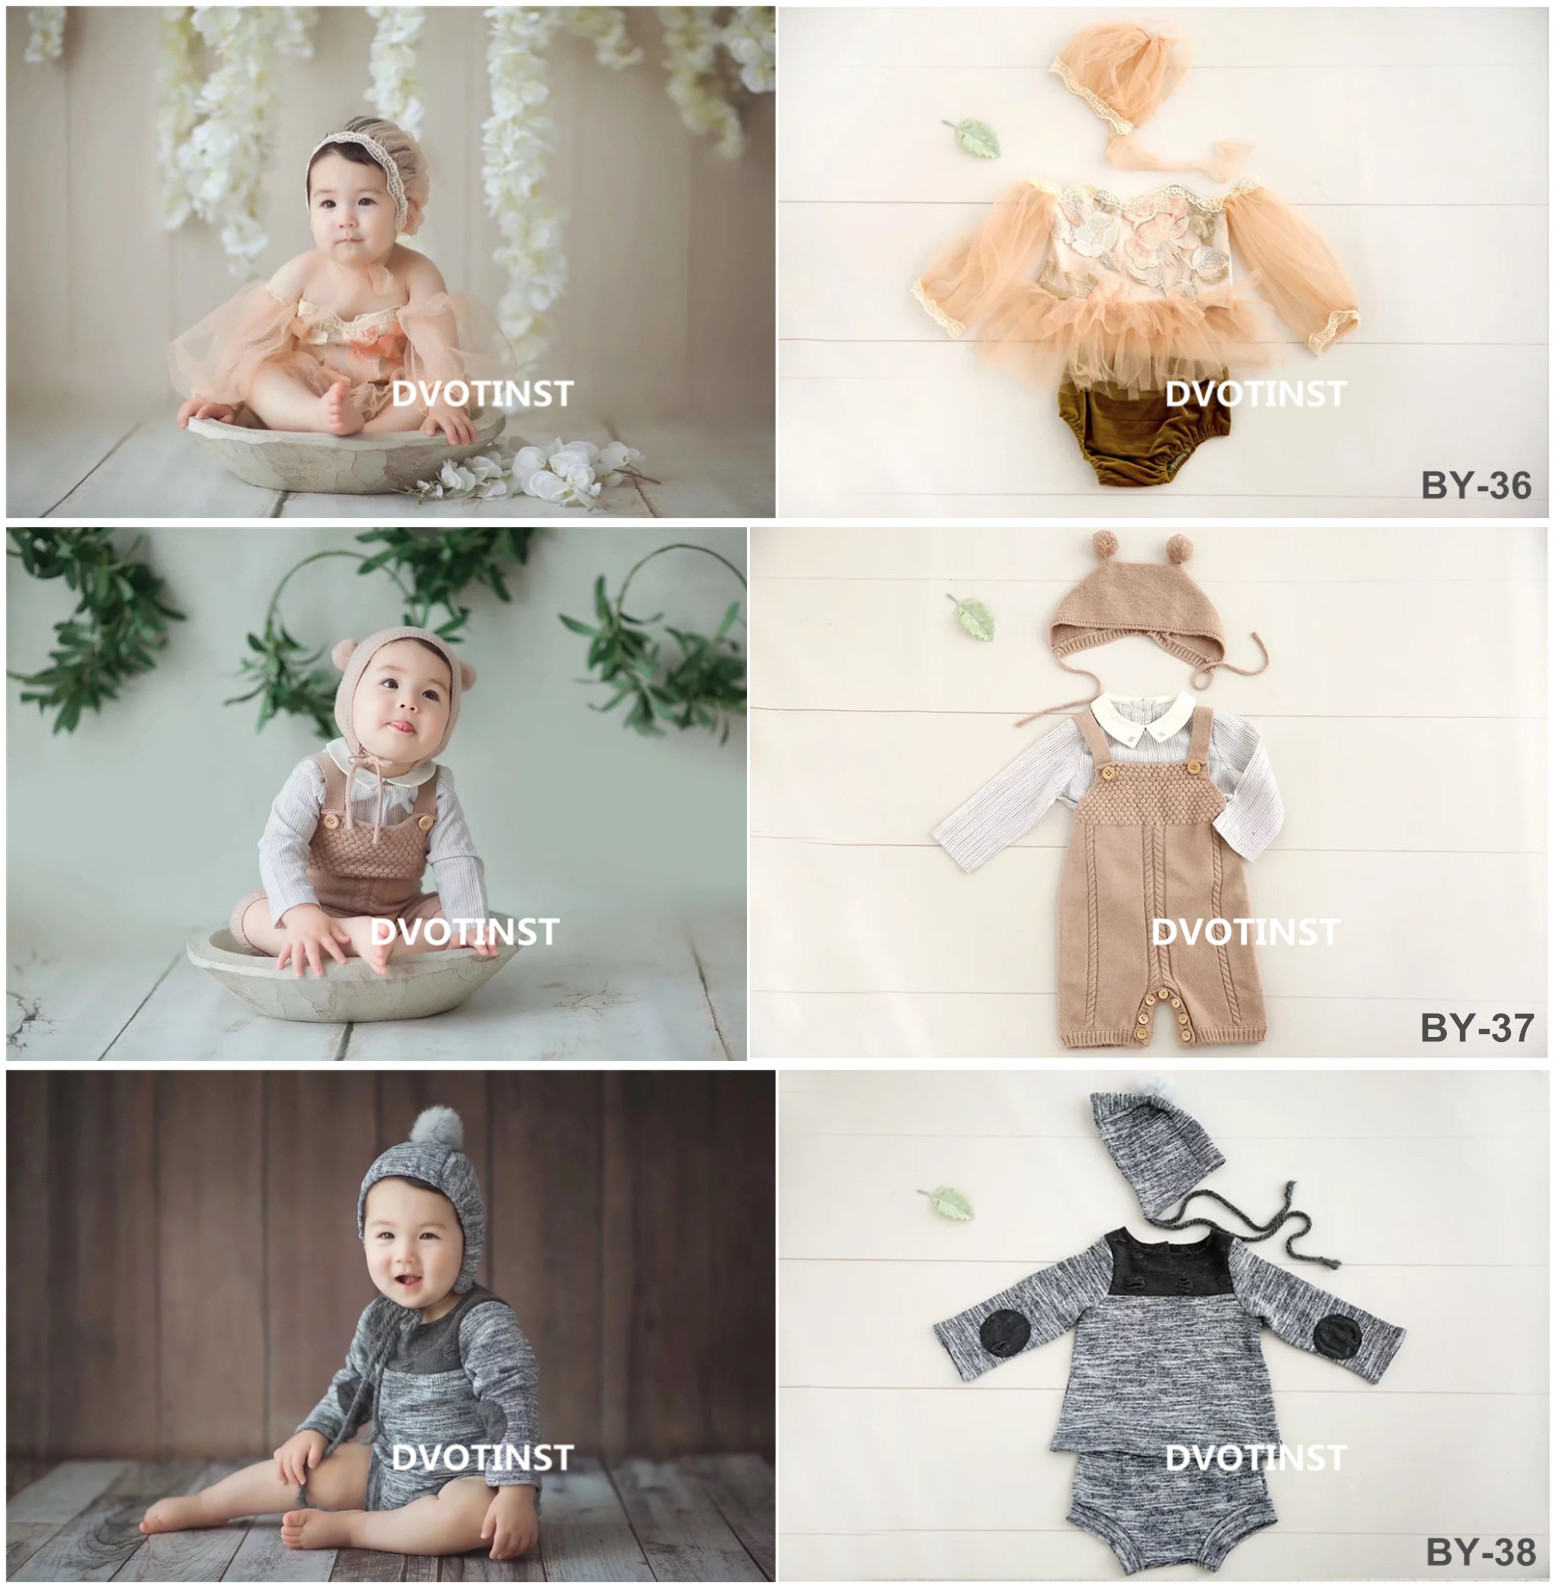 Dvotinst Baby Boys Girls Photography Props Crochet Knitted Lace Outfits Clothes Set Fotografia Accessories Studio Shoot Props цена